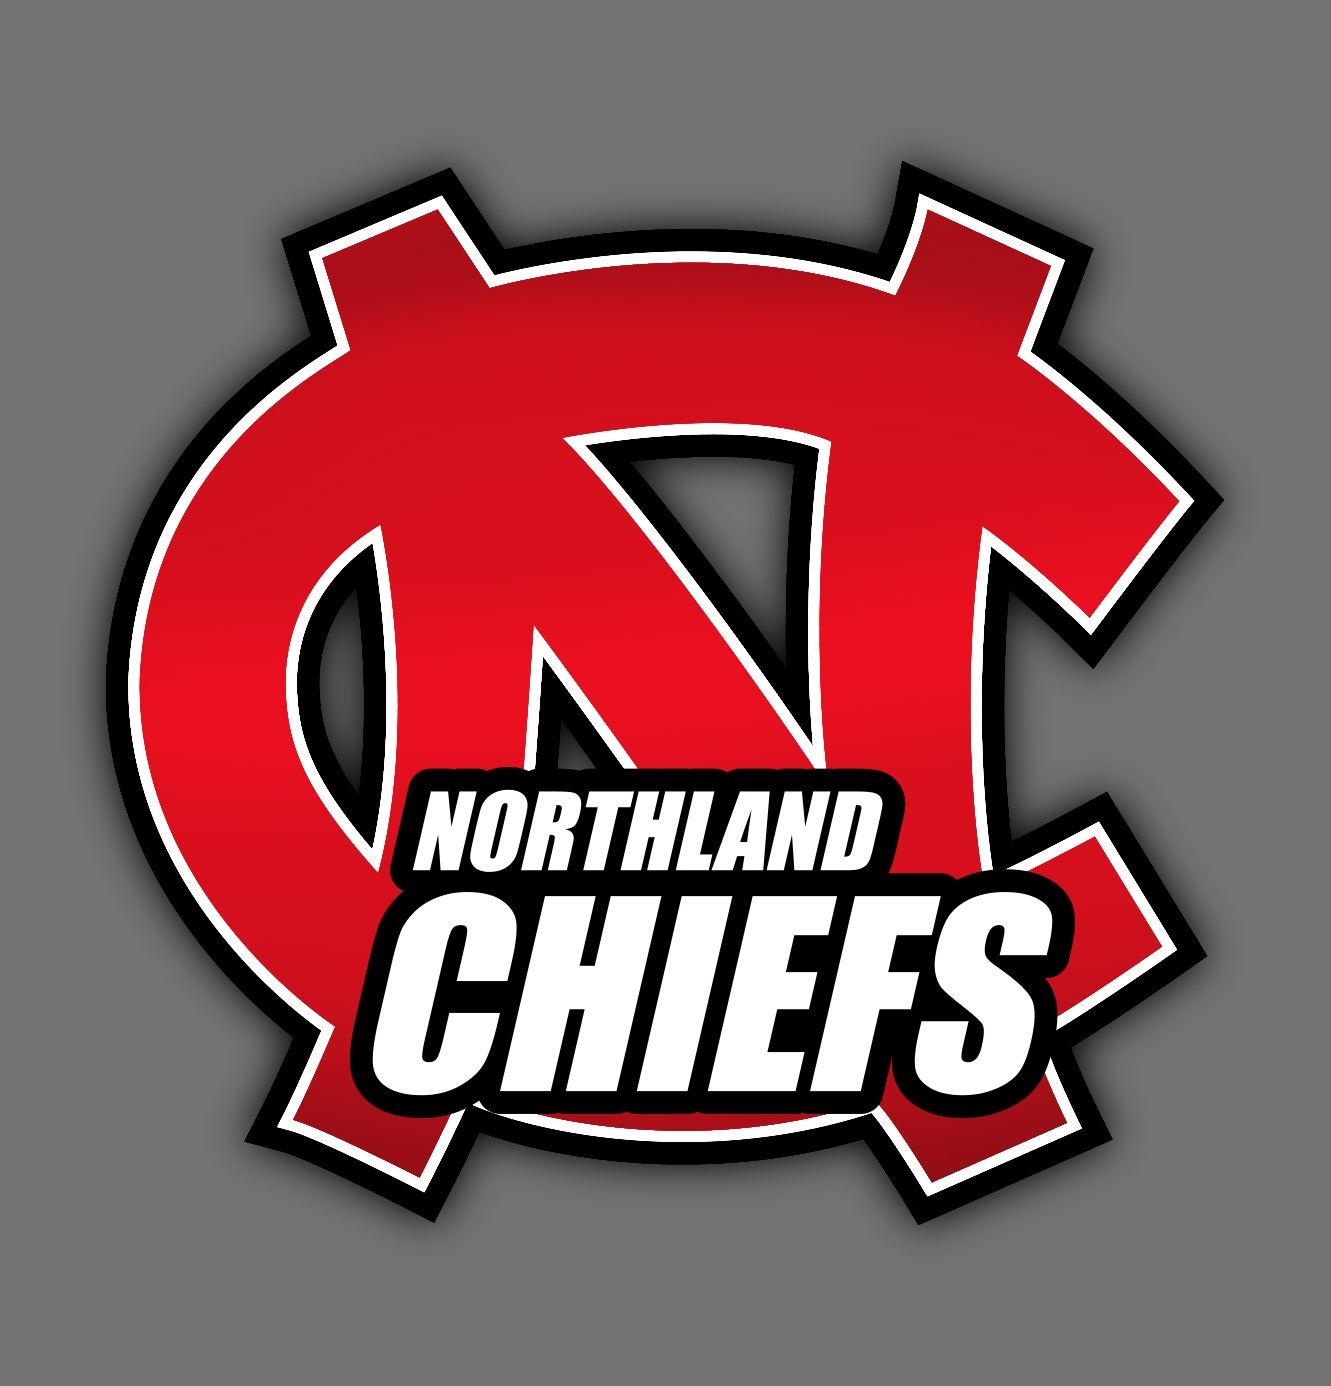 CUSHMO DESIGNS - Northland Chiefs